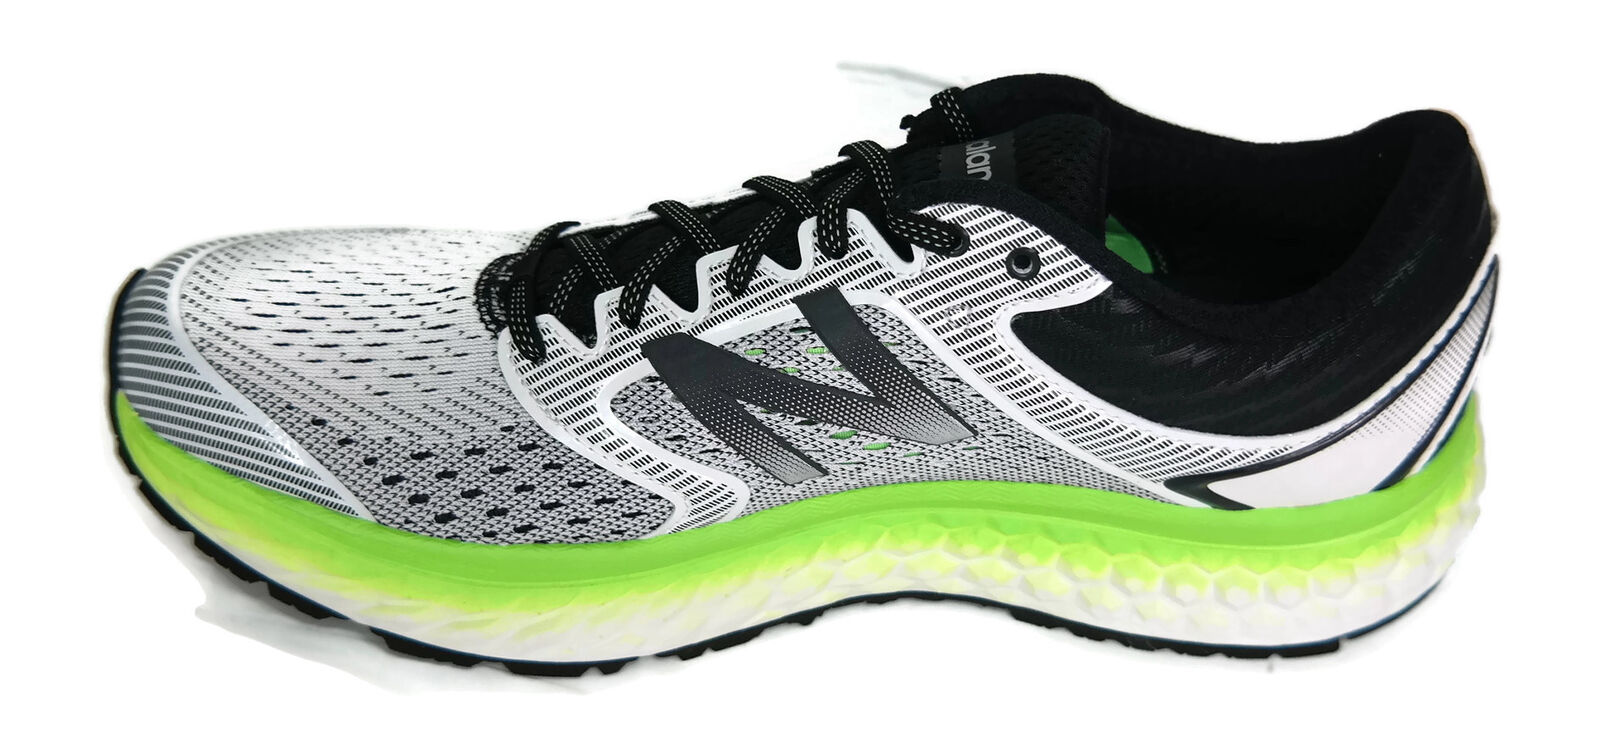 New Balance Men's 1080V7 Running-Shoes, White/Energy Lime, 9 D US